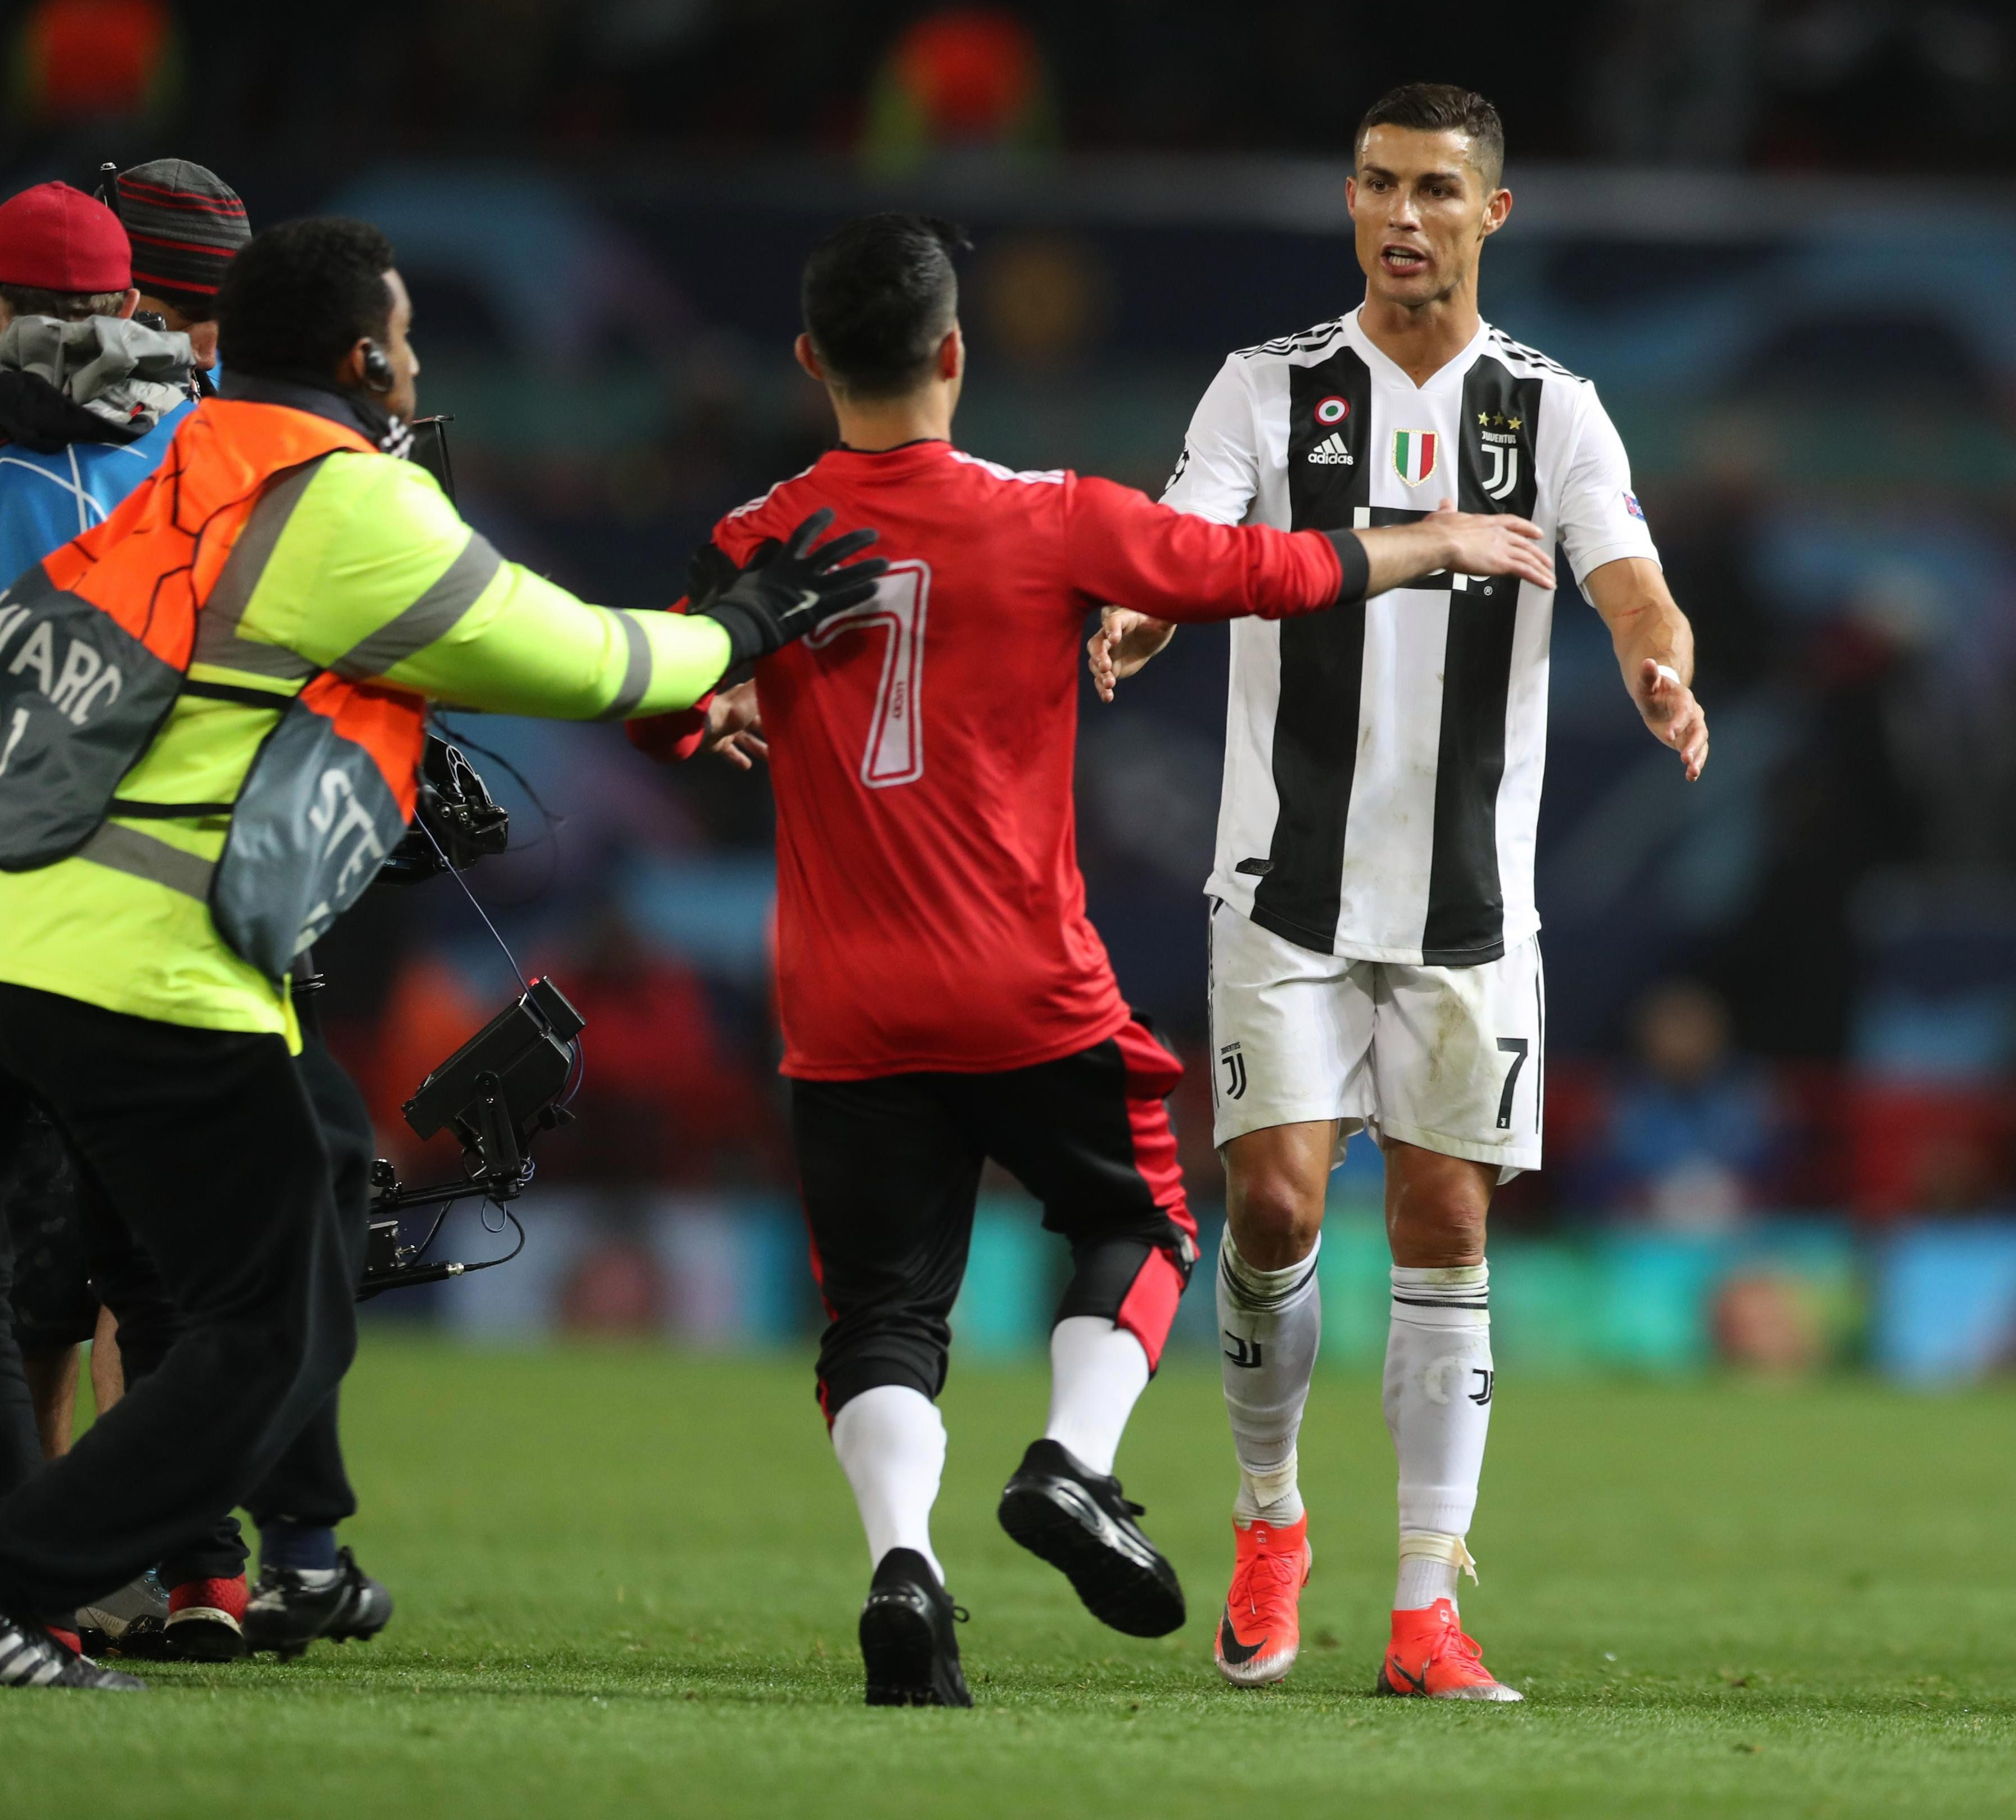 A fan also wanted to get close to the Portuguese football legend - with the stewards caught short